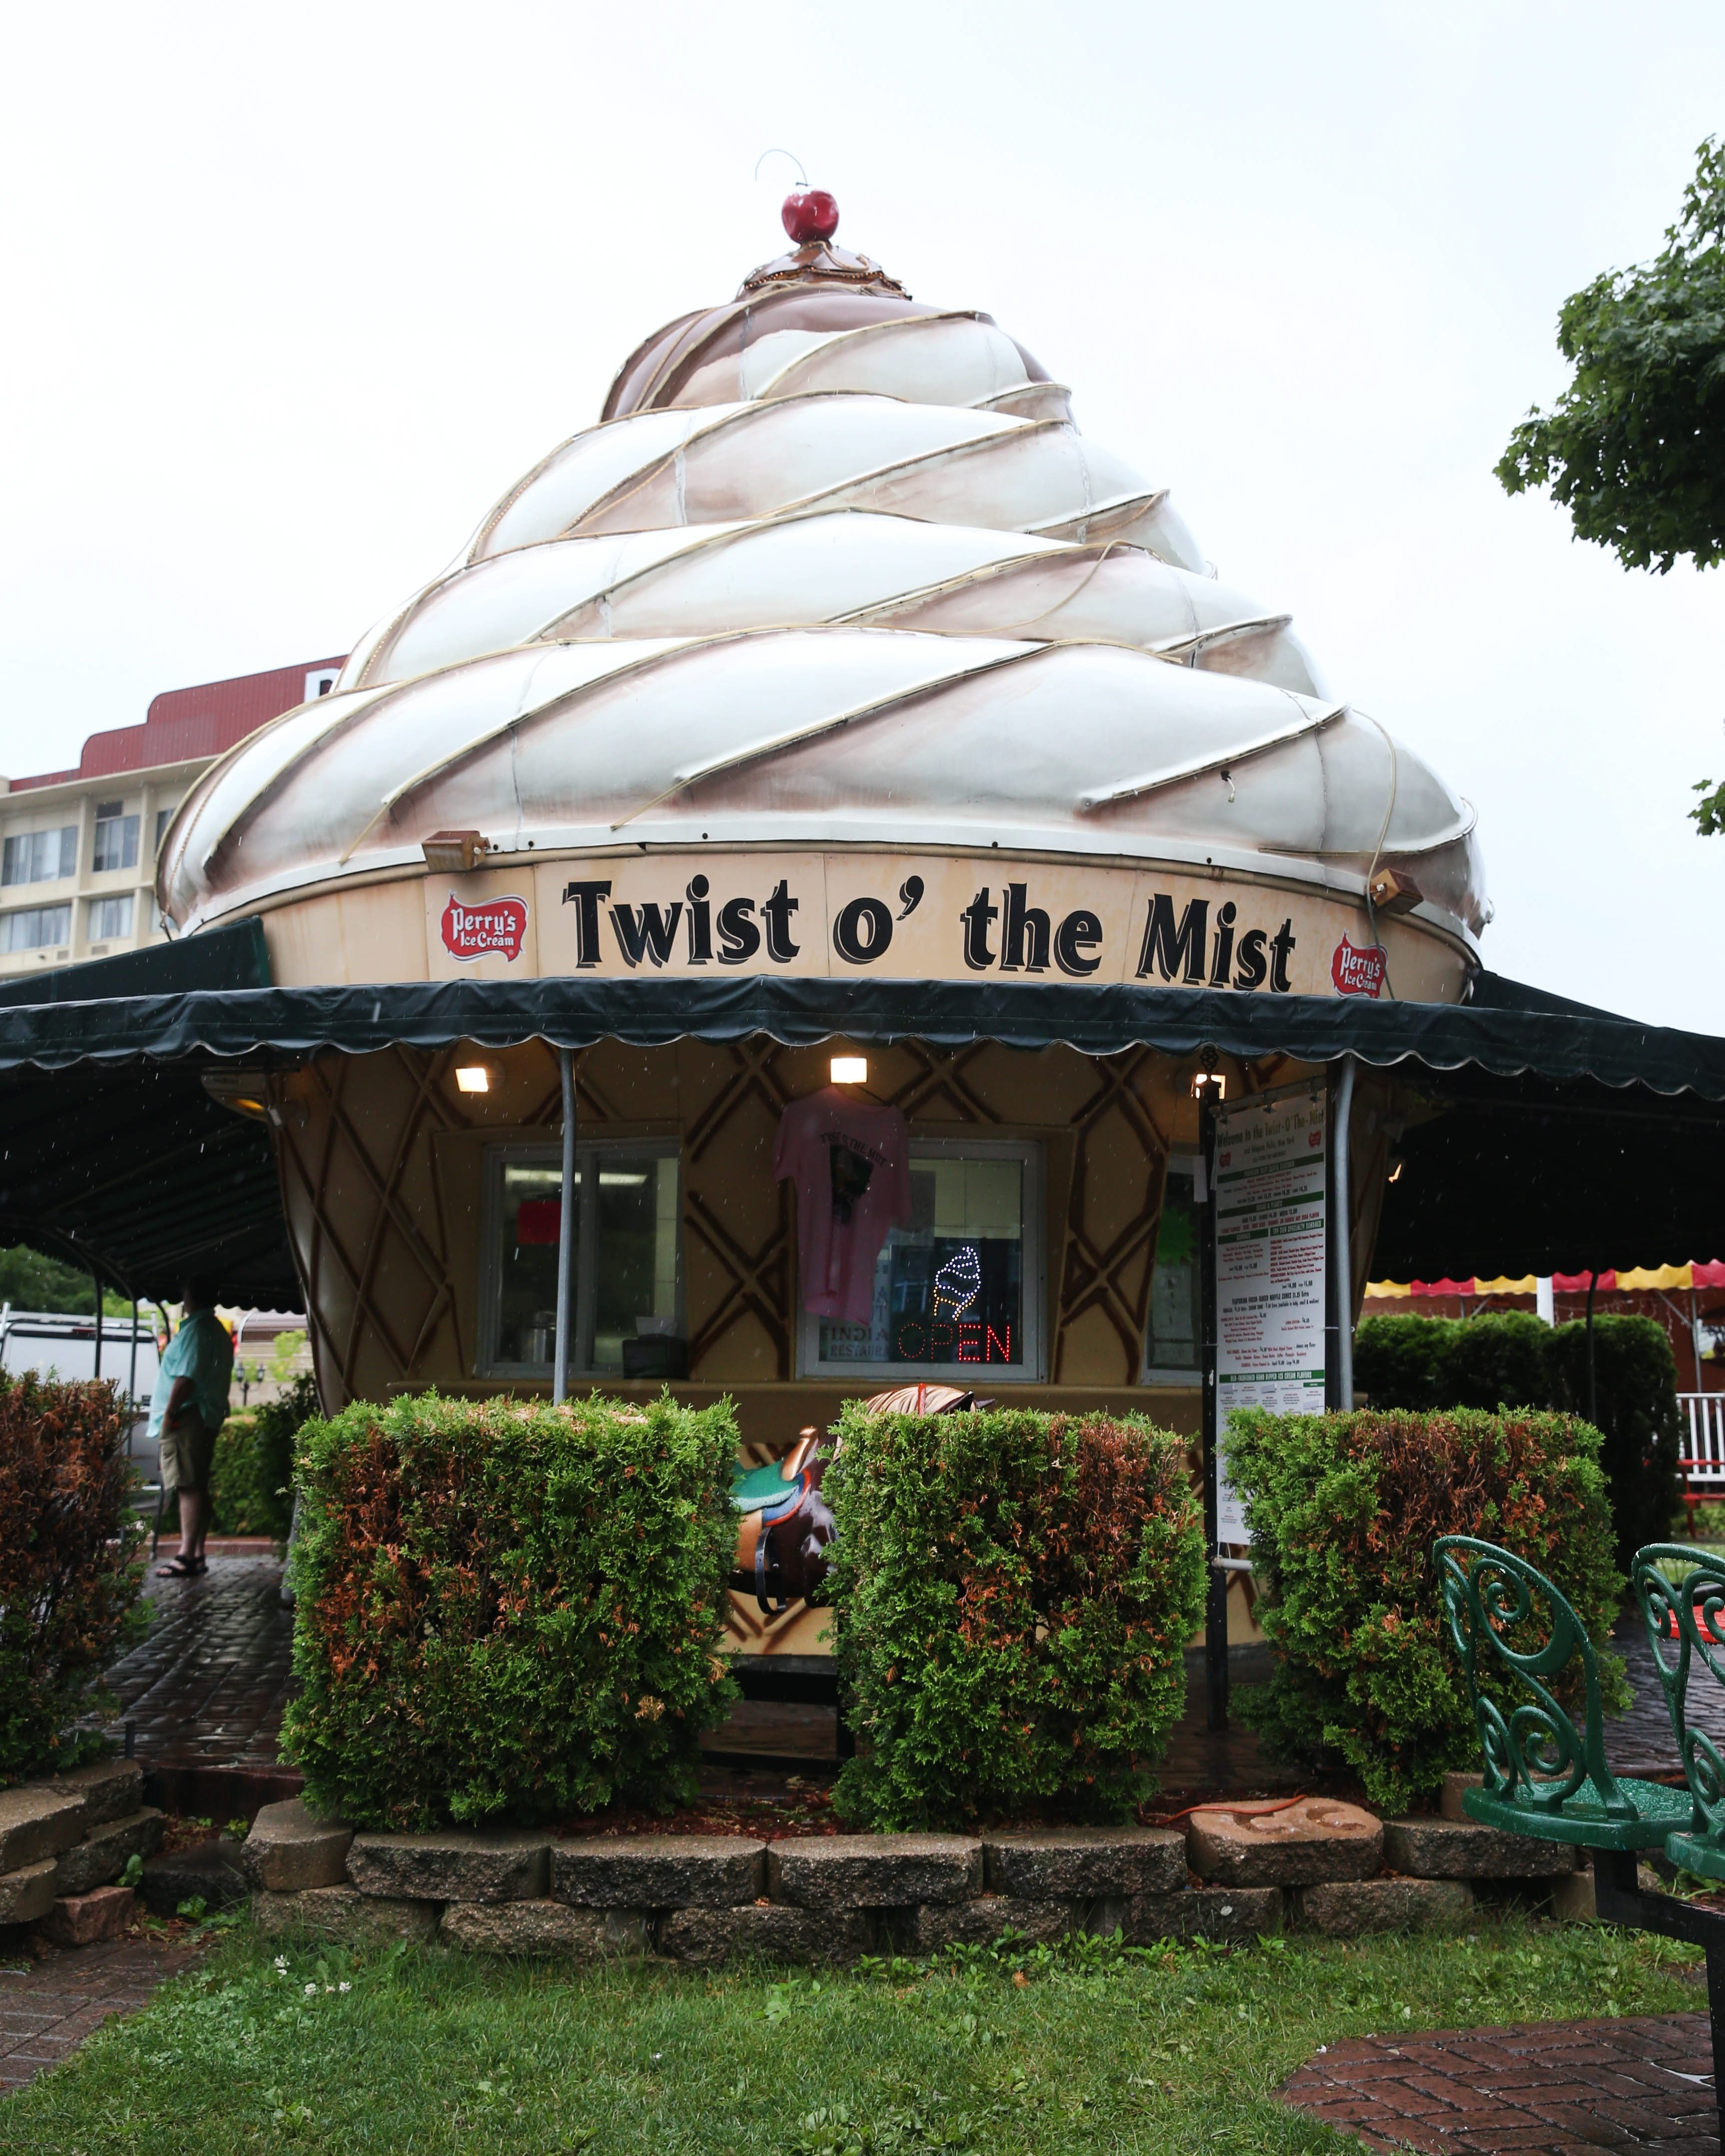 The Twist o' the Mist on Niagara Street is a popular spot with tourists. (Sharon Cantillon/Buffalo News)